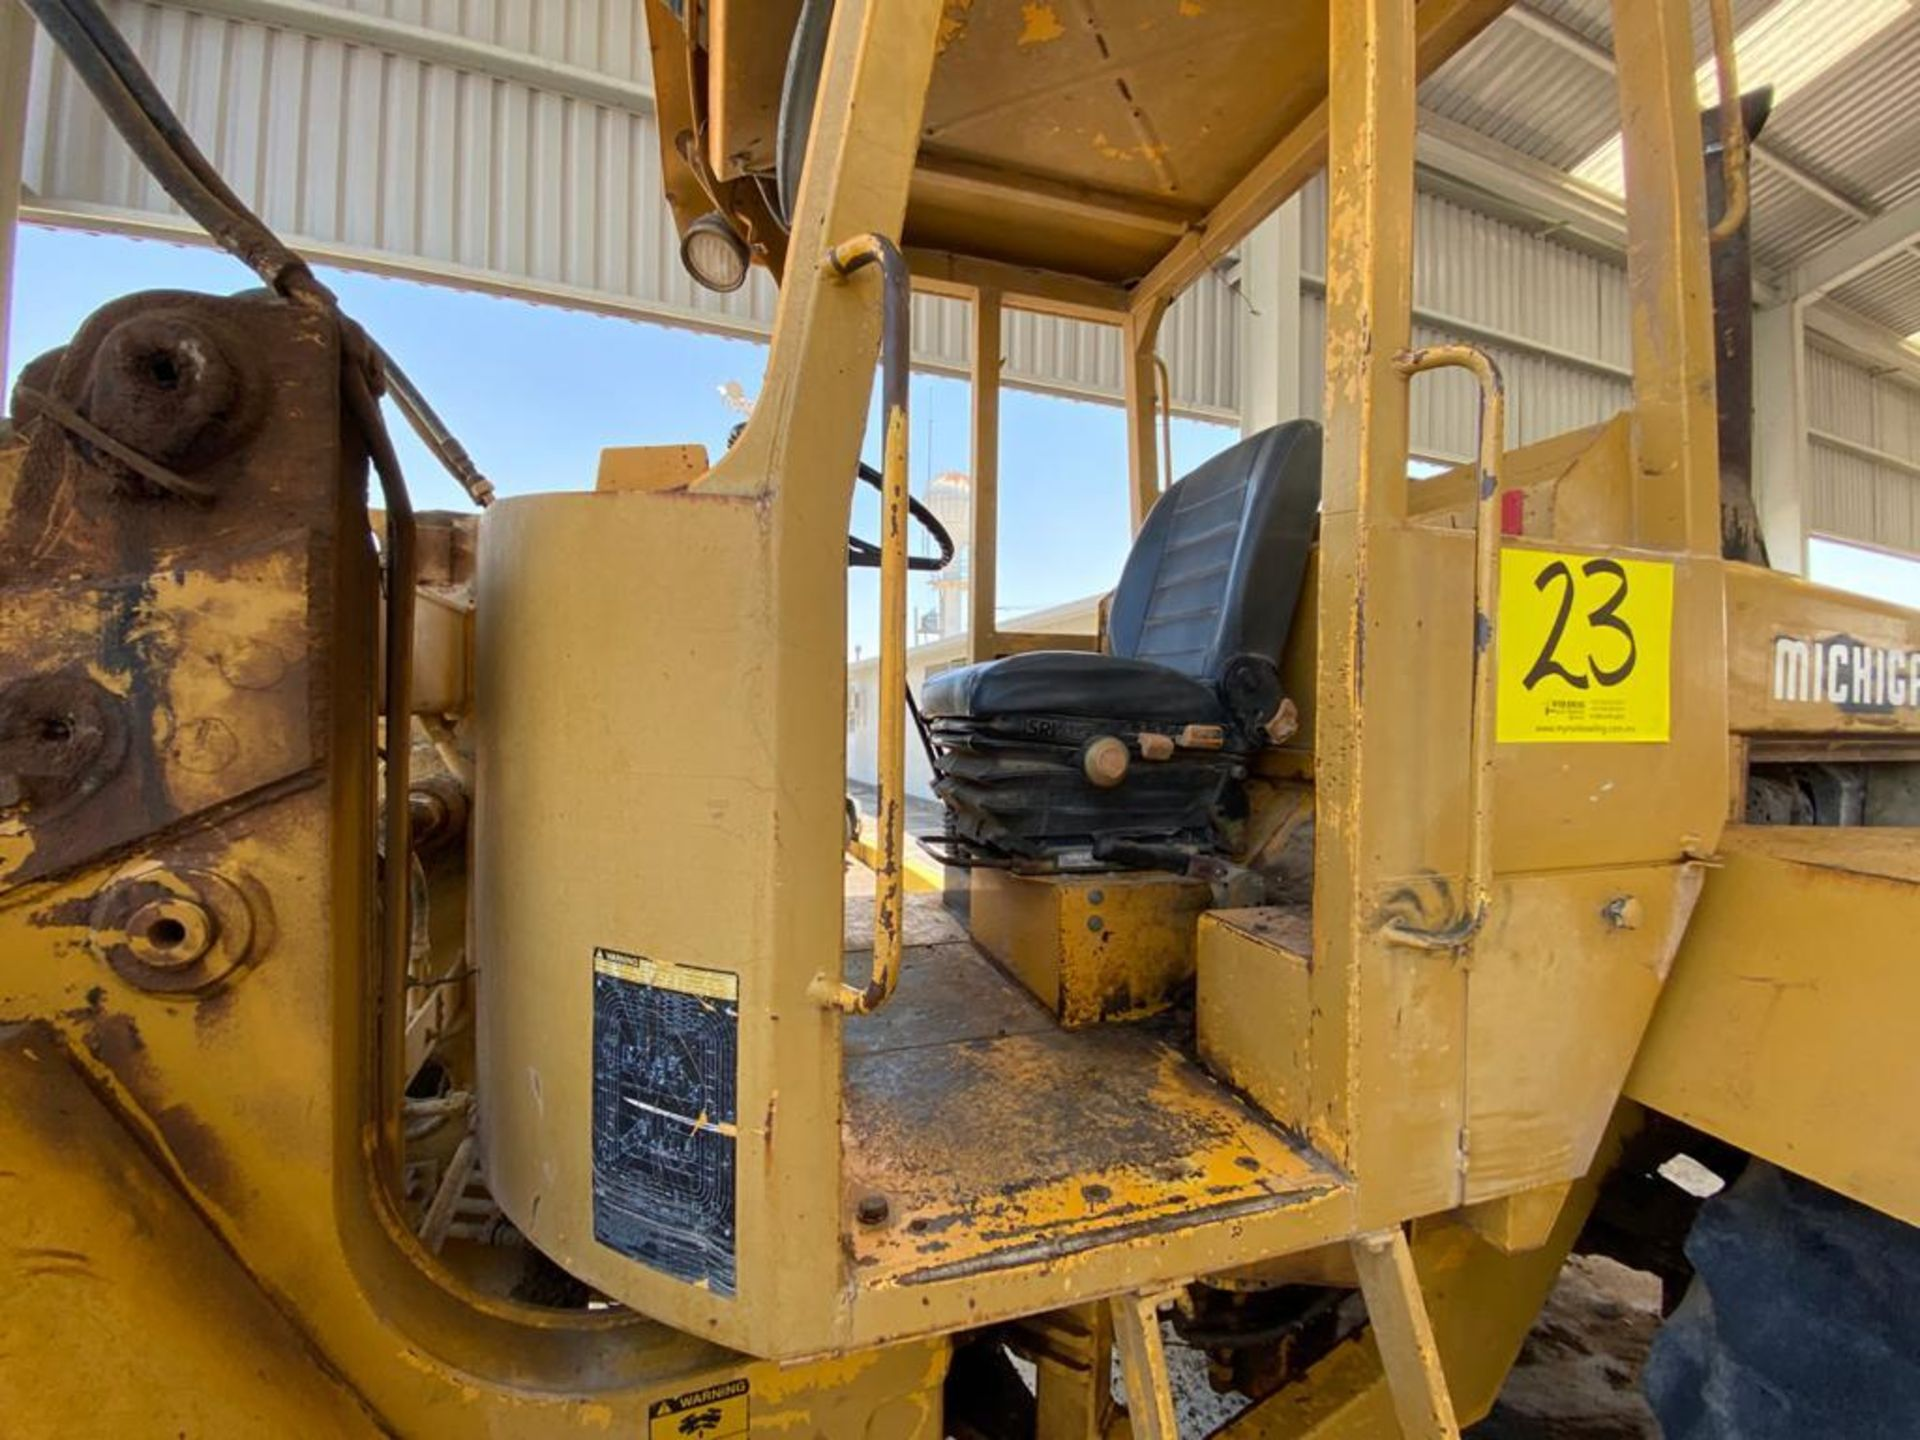 Volvo BM TYPE L 30 Michigan Front Loder, automatic transmission - Image 27 of 53